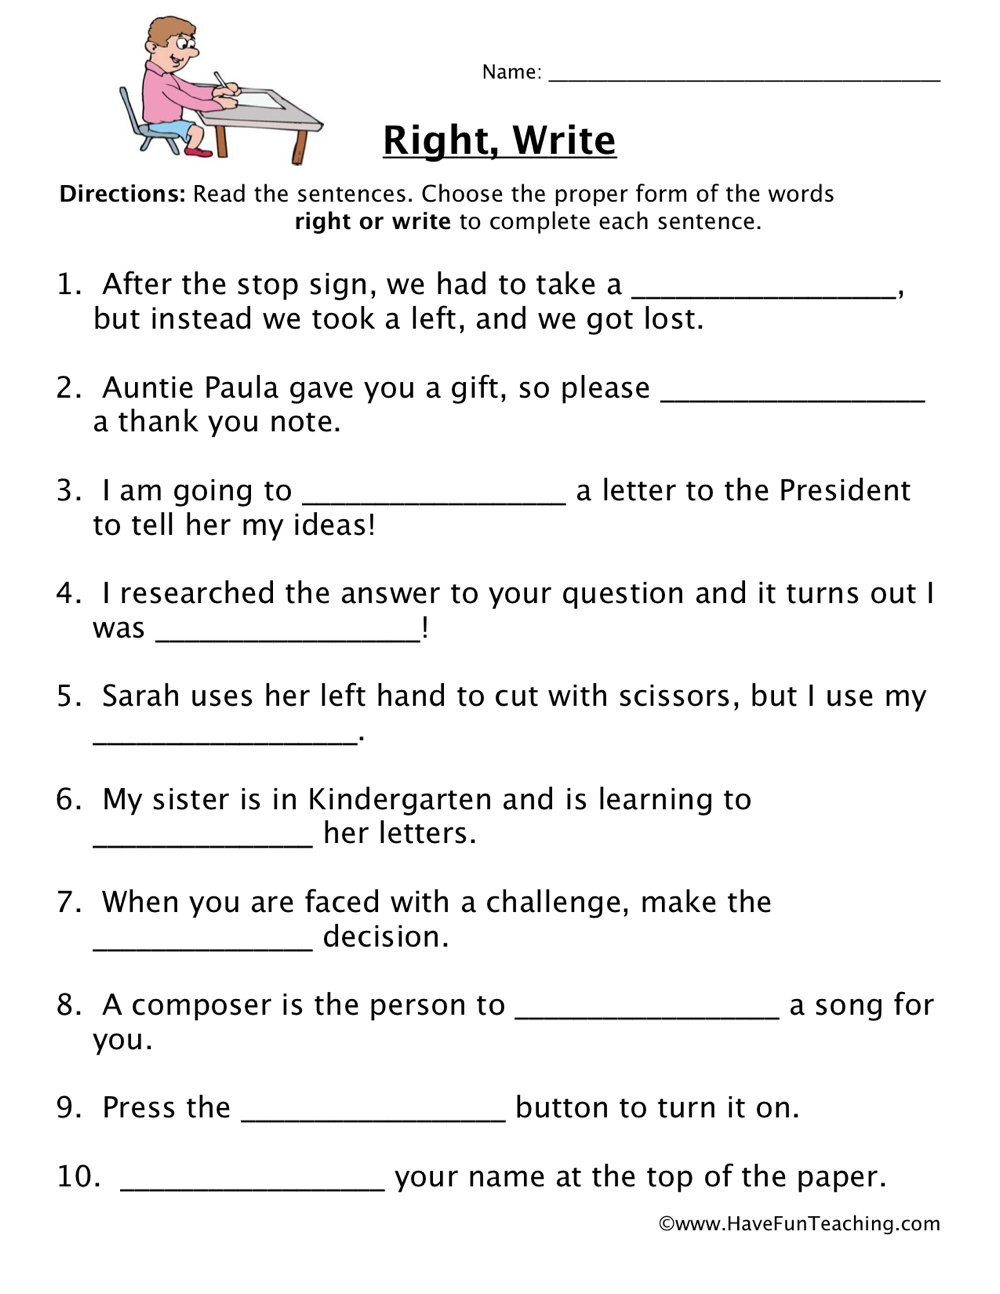 Complete Sentences Worksheets 4th Grade Right Write Homophones Worksheet